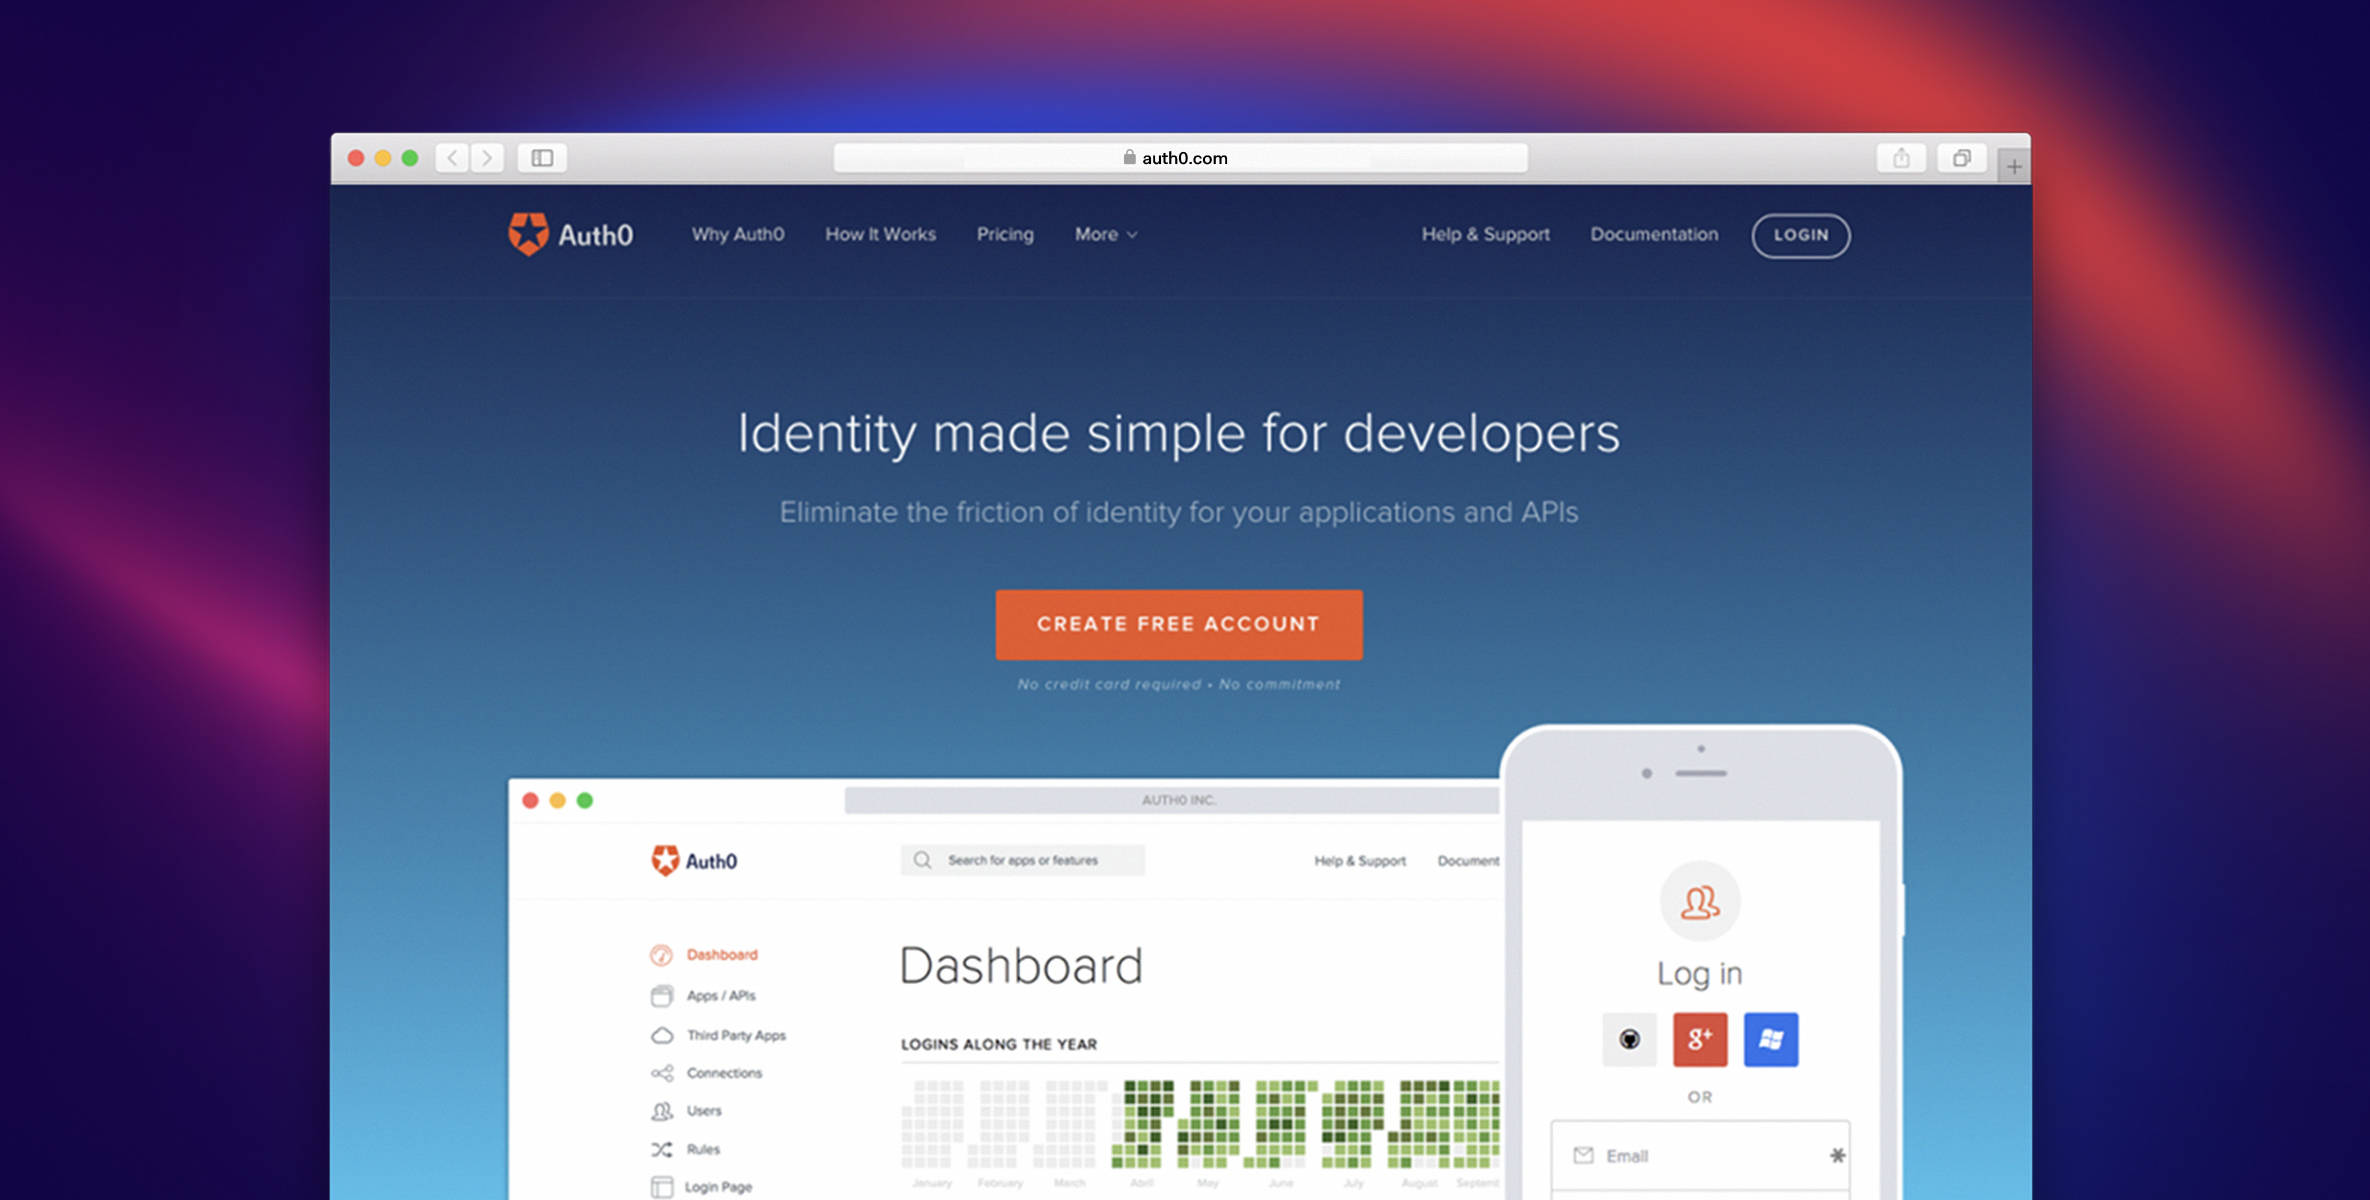 Auth0 makes clear that one of its goals is to make identity simpler for developers.